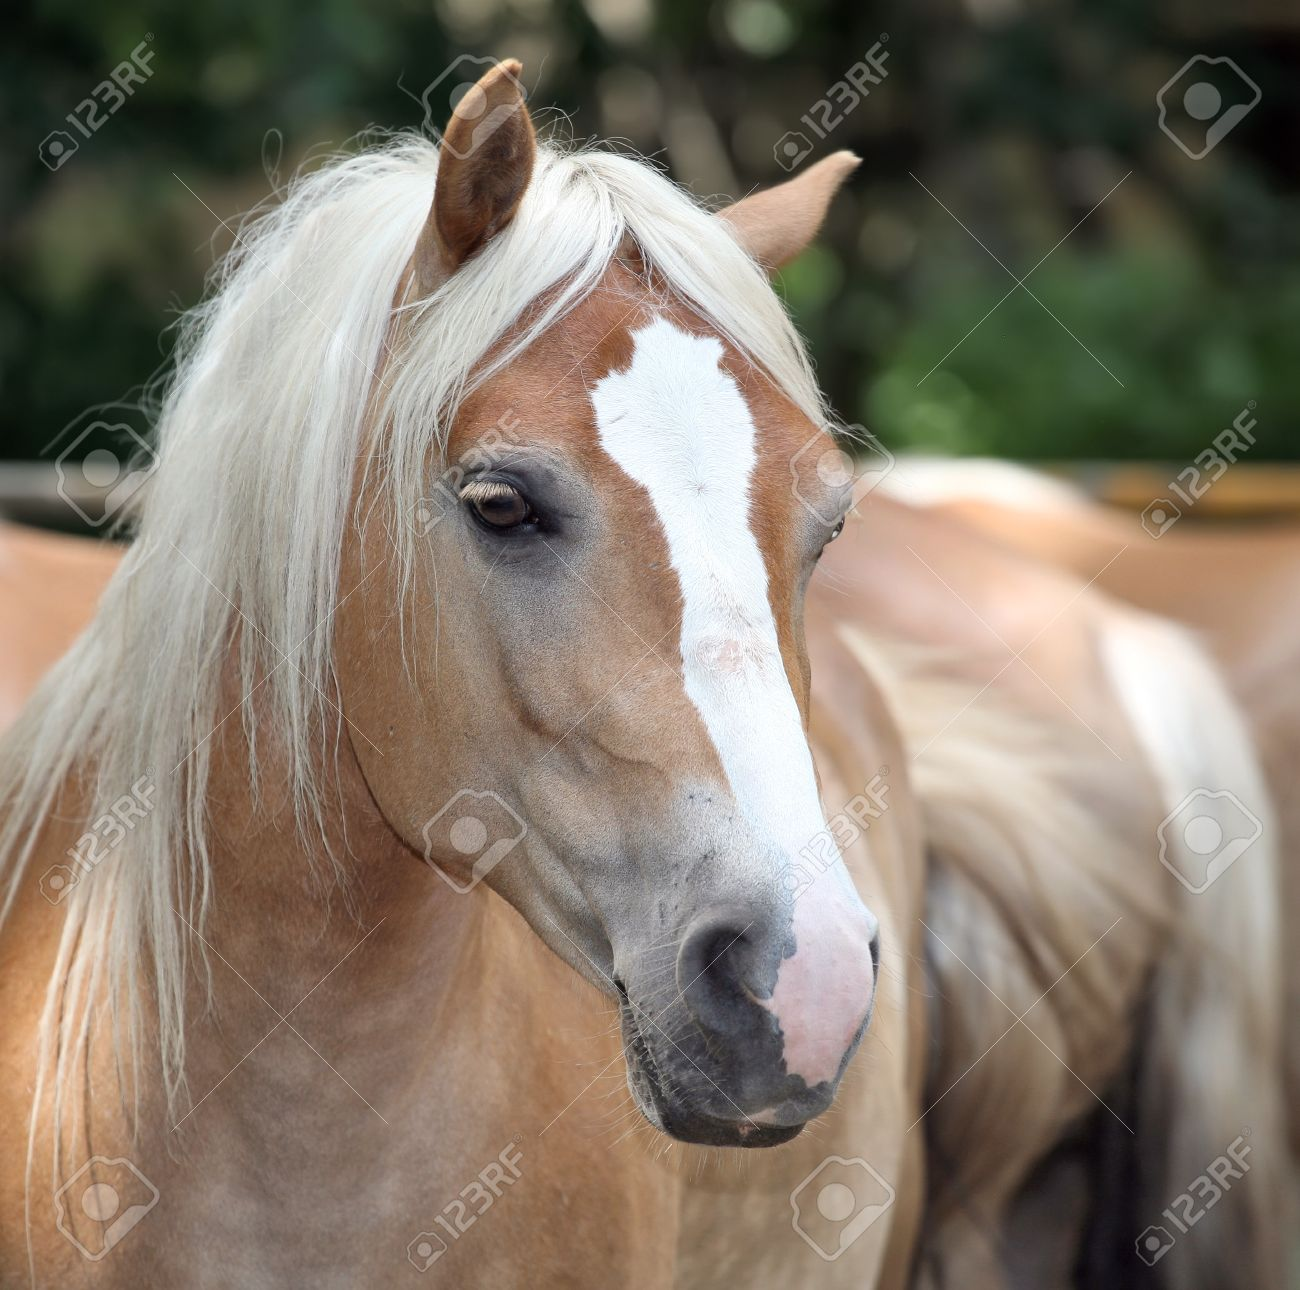 A Closeup Portrait Of The Head Of A Beautiful Horse Stock Photo Picture And Royalty Free Image Image 14128713